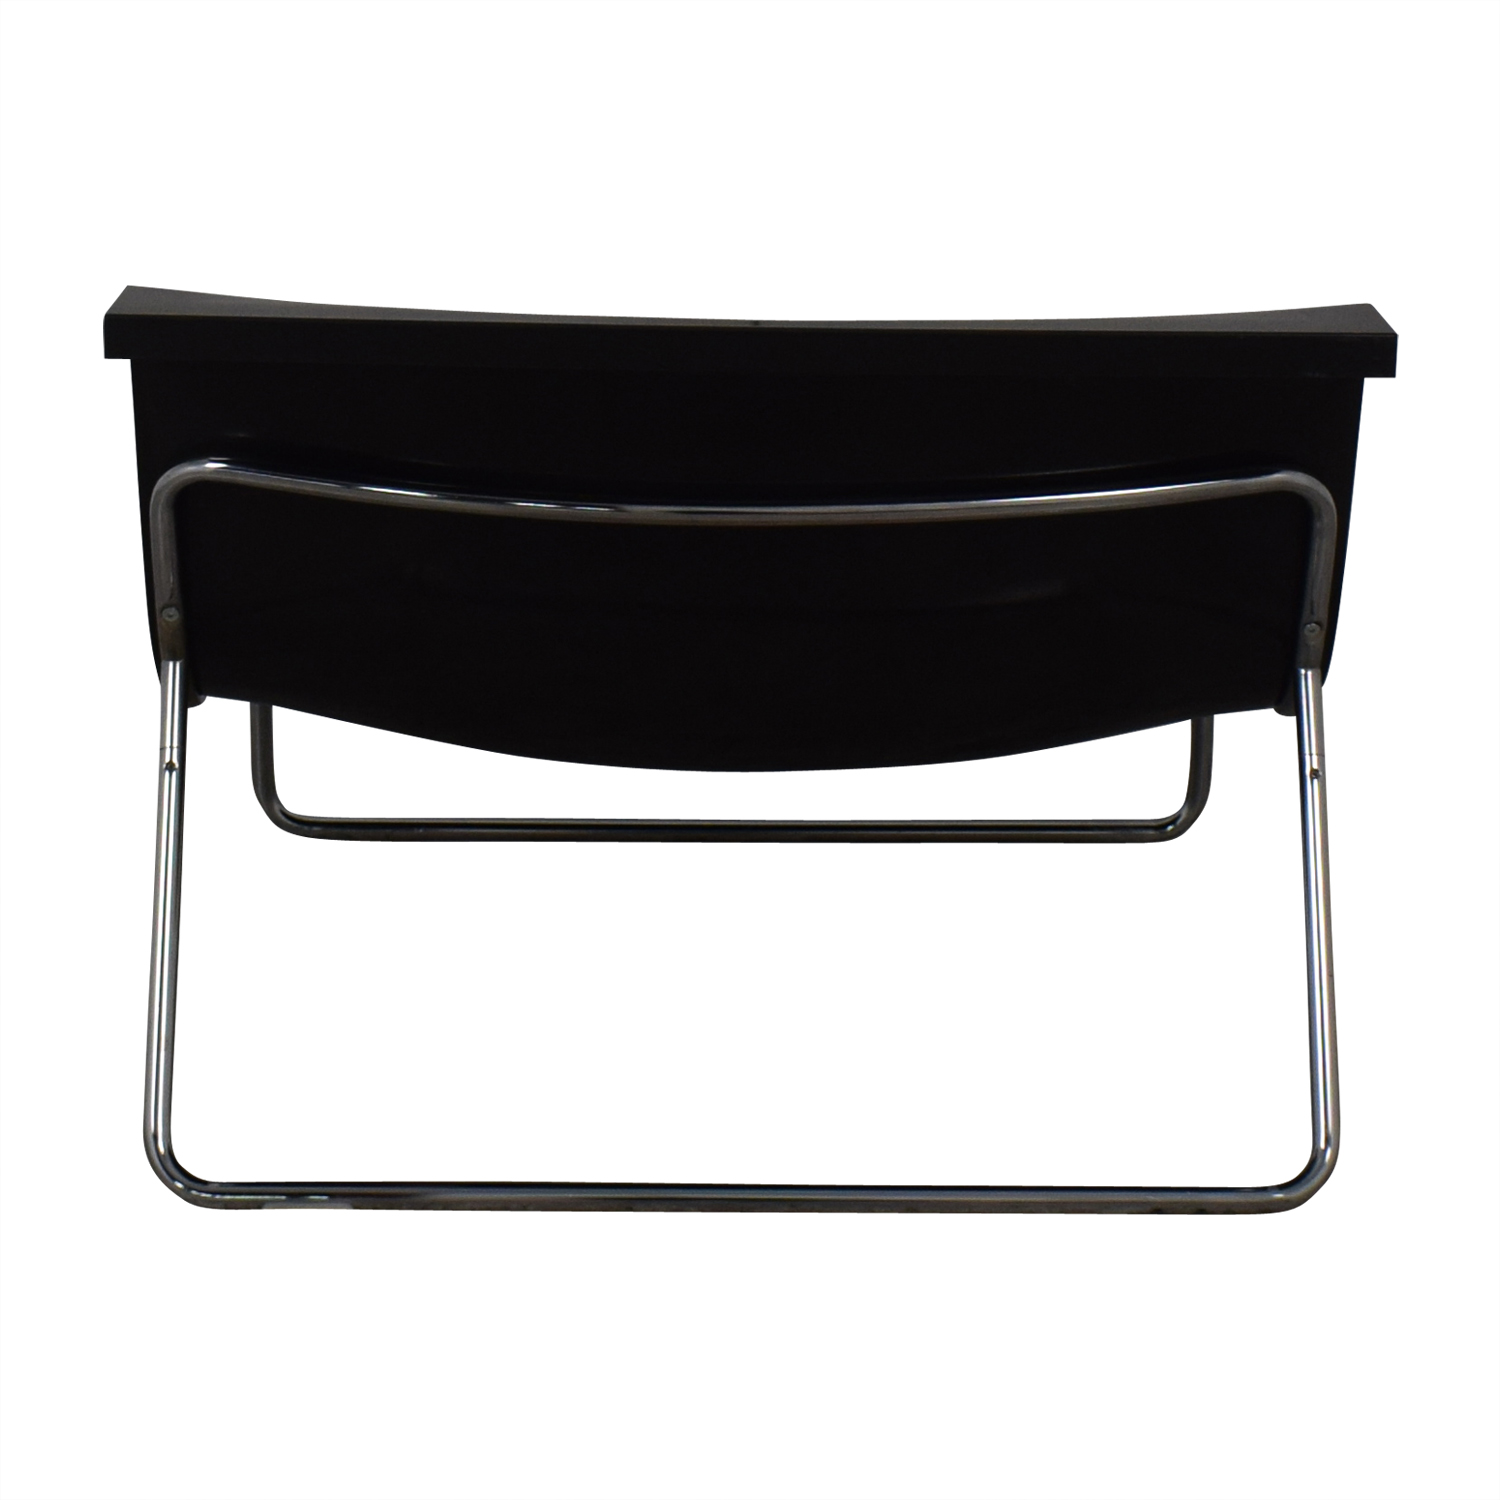 Kartell Kartell Form Chair by Piero Lissoni second hand